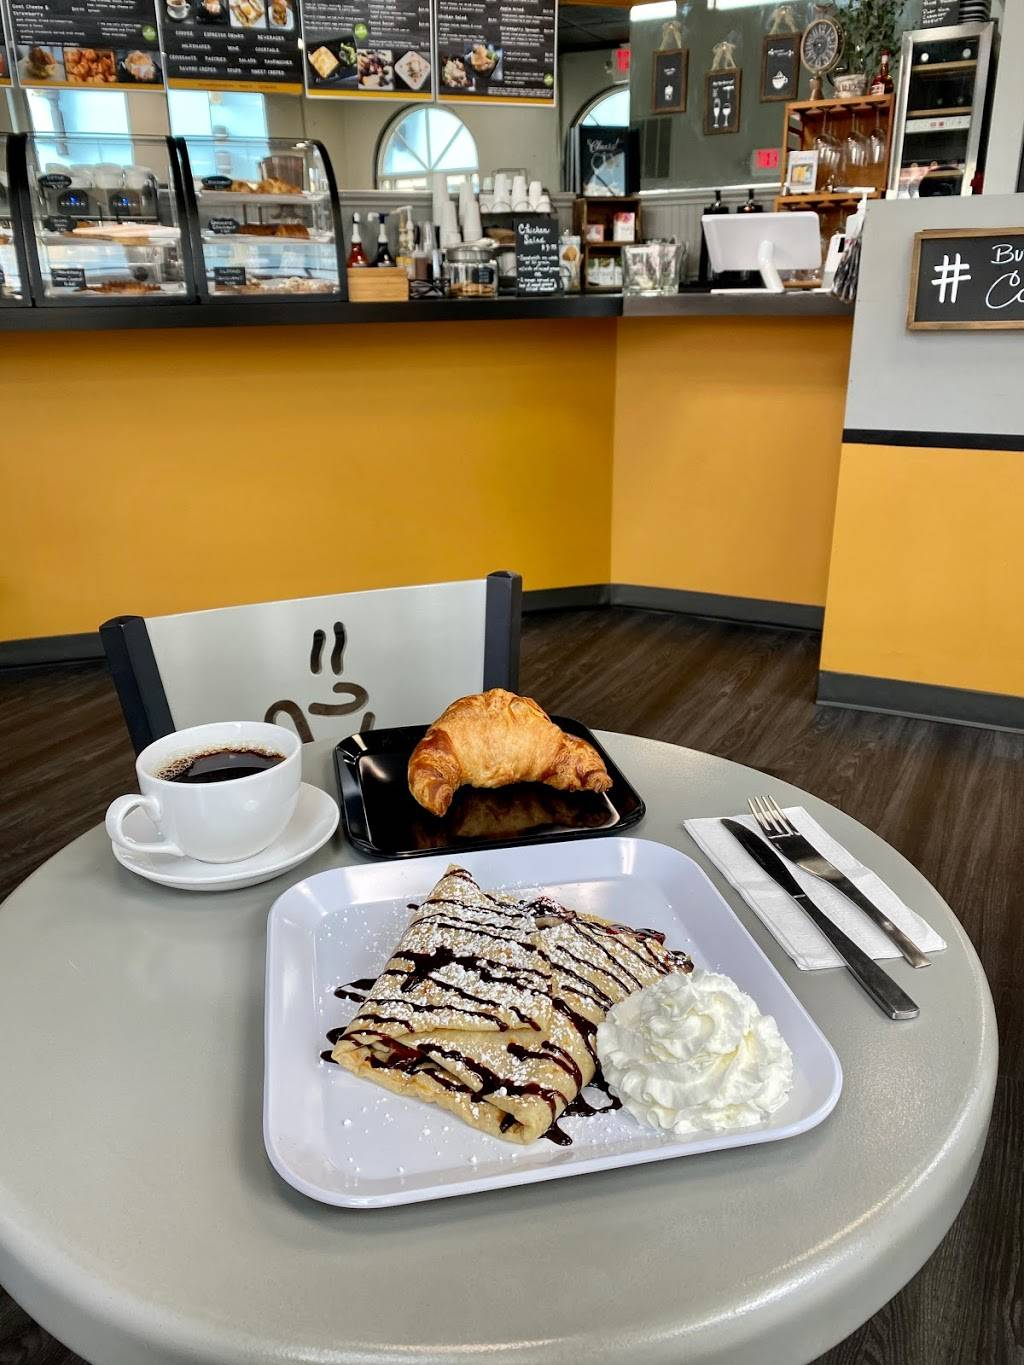 Le Petit French Cafe | bakery | 4350 Gulf Shore Blvd N #506, Naples, FL 34103, USA | 2392800438 OR +1 239-280-0438